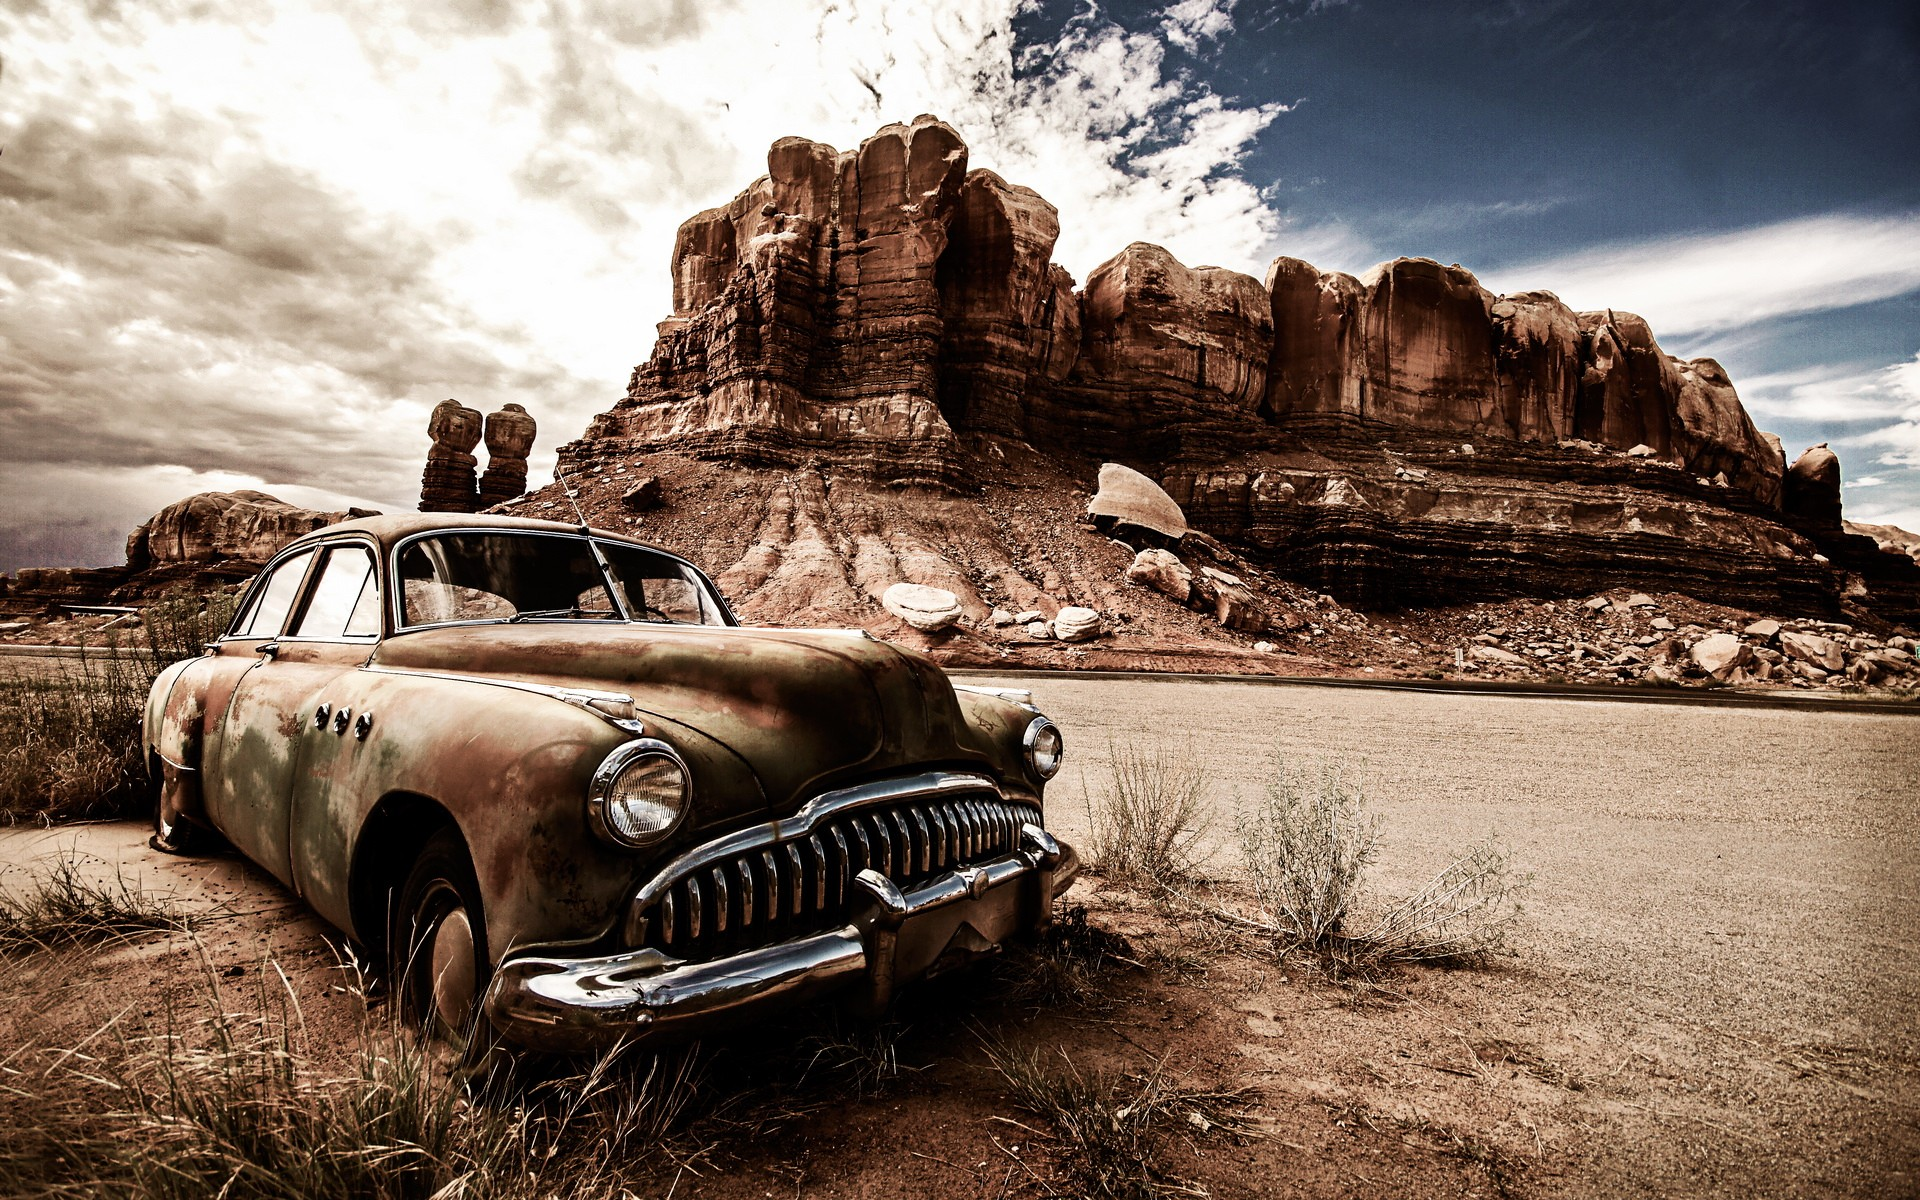 1366x768 Vintage Dusty Car 1366x768 Resolution Hd 4k Wallpapers